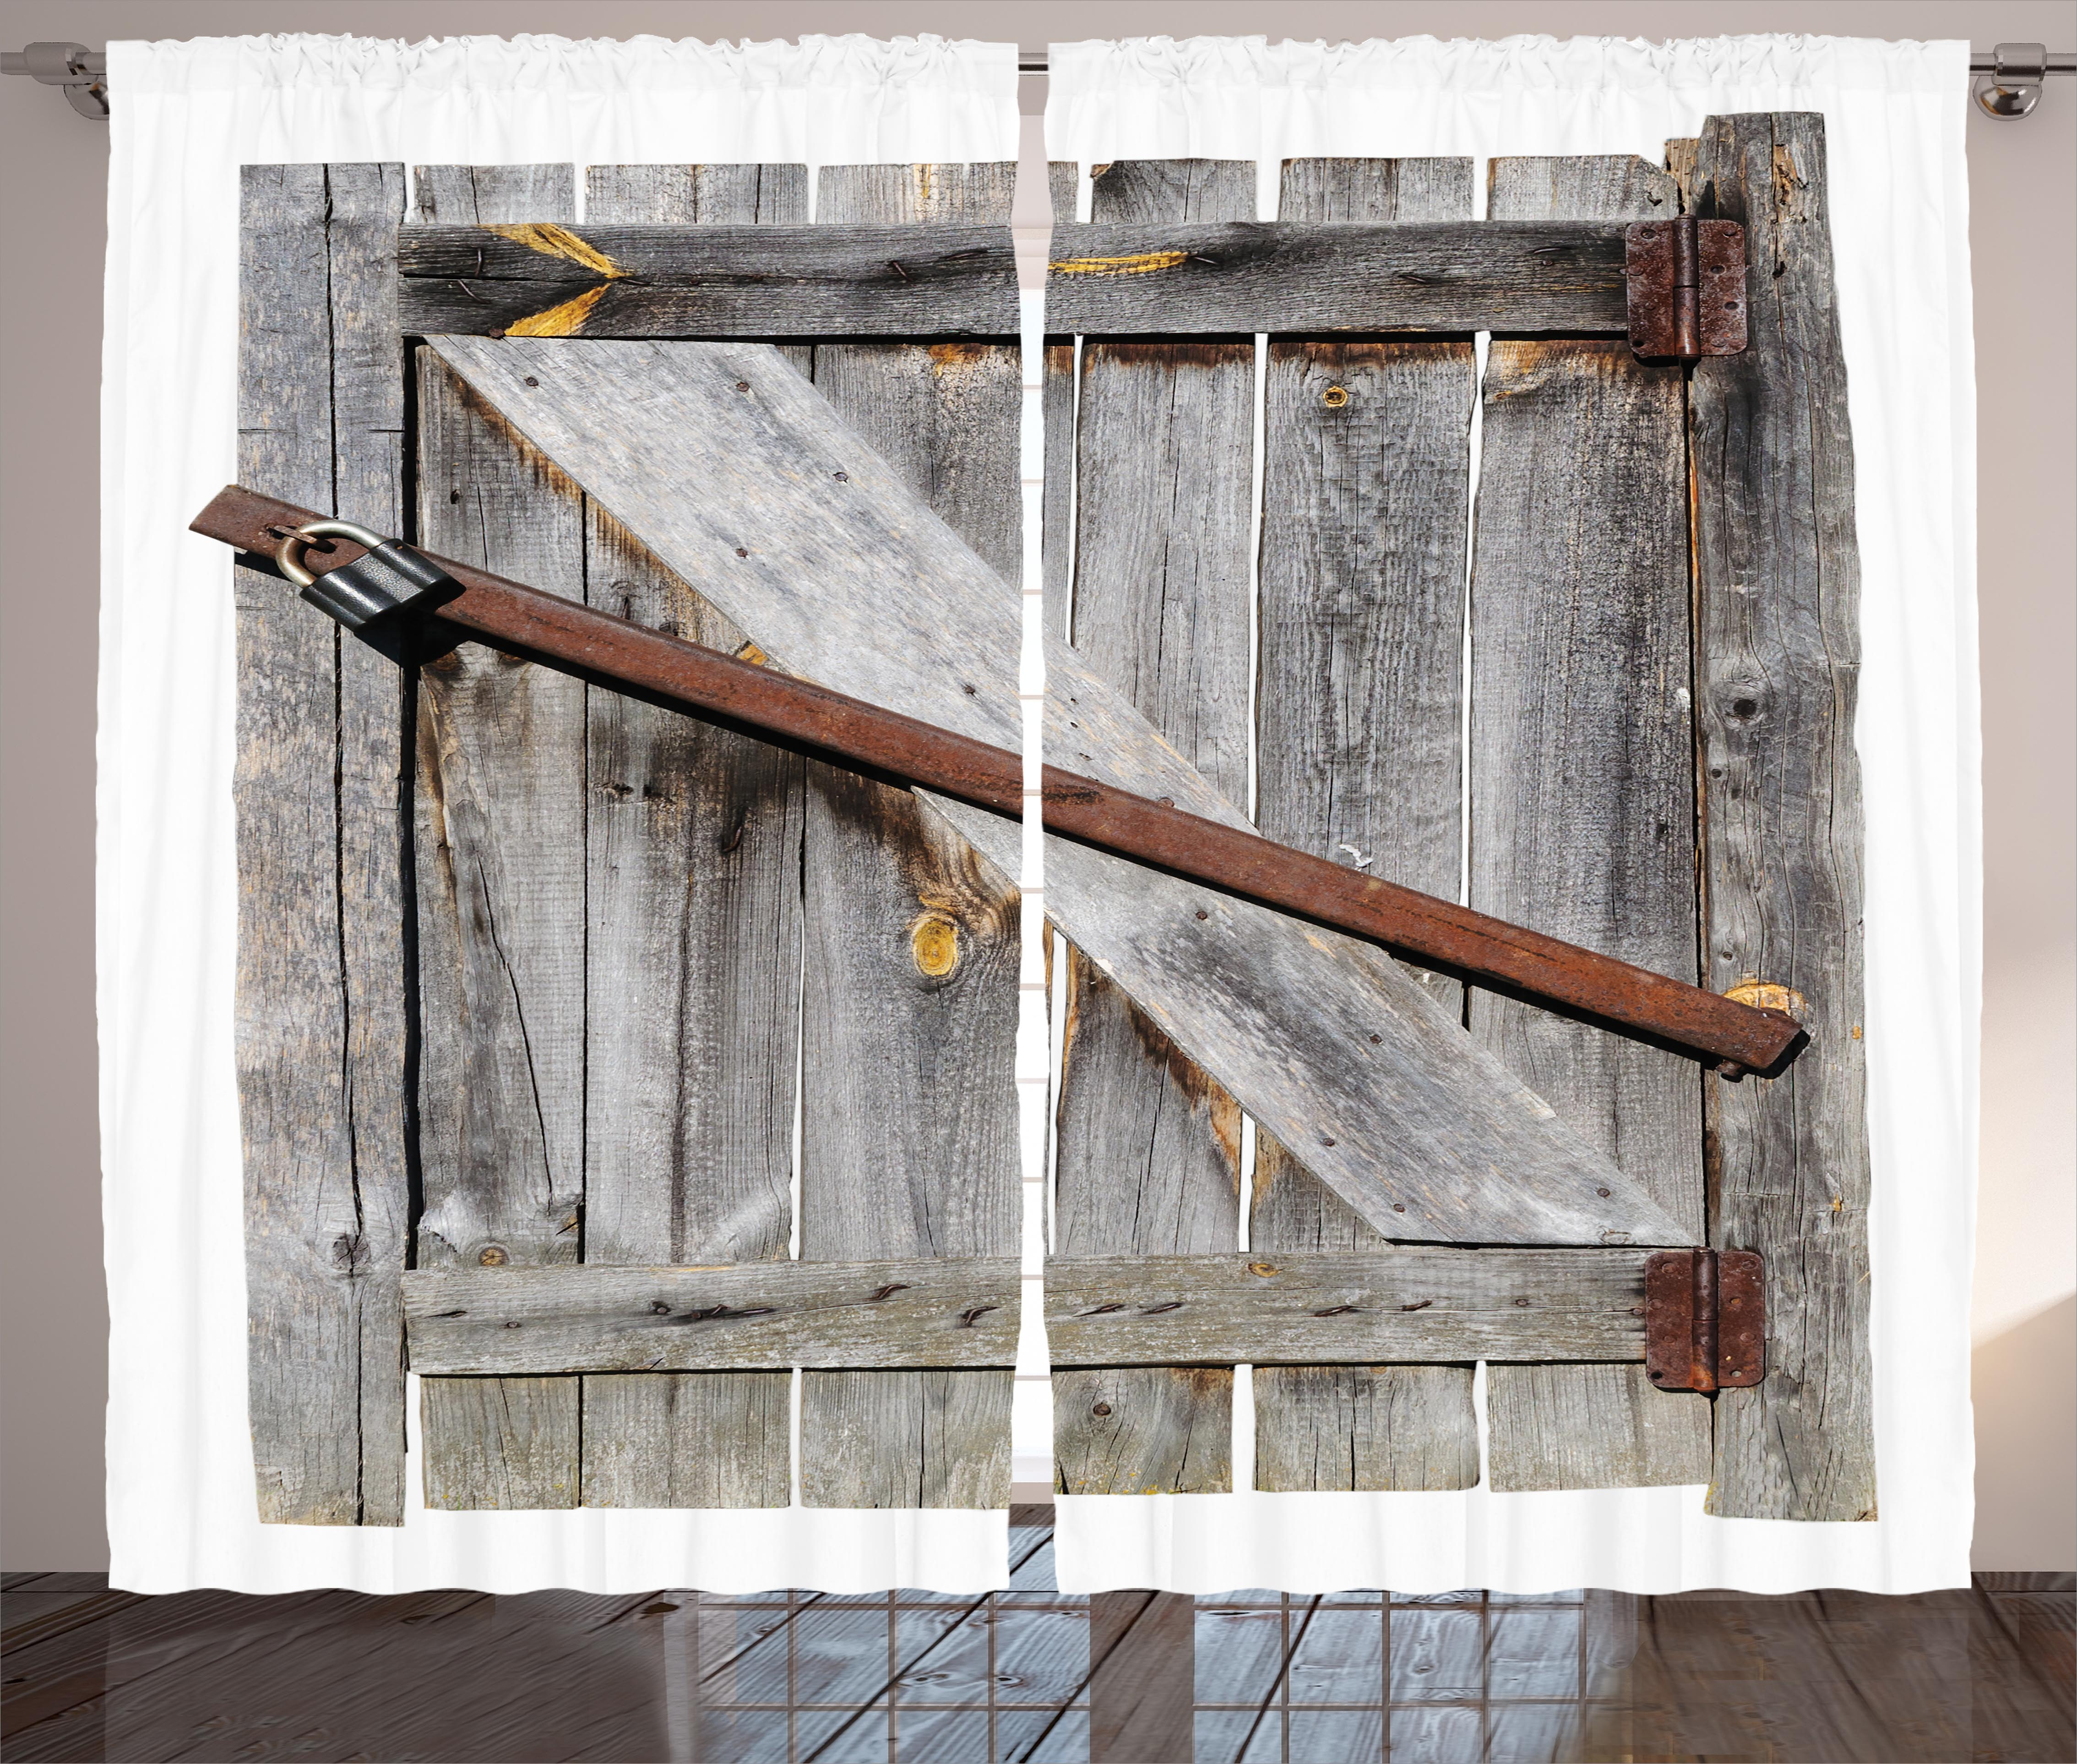 Awesome Rustic Curtains 2 Panels Set, Aged Wood Barn Door With Rusty Crossed Locks  Abandoned Ancient